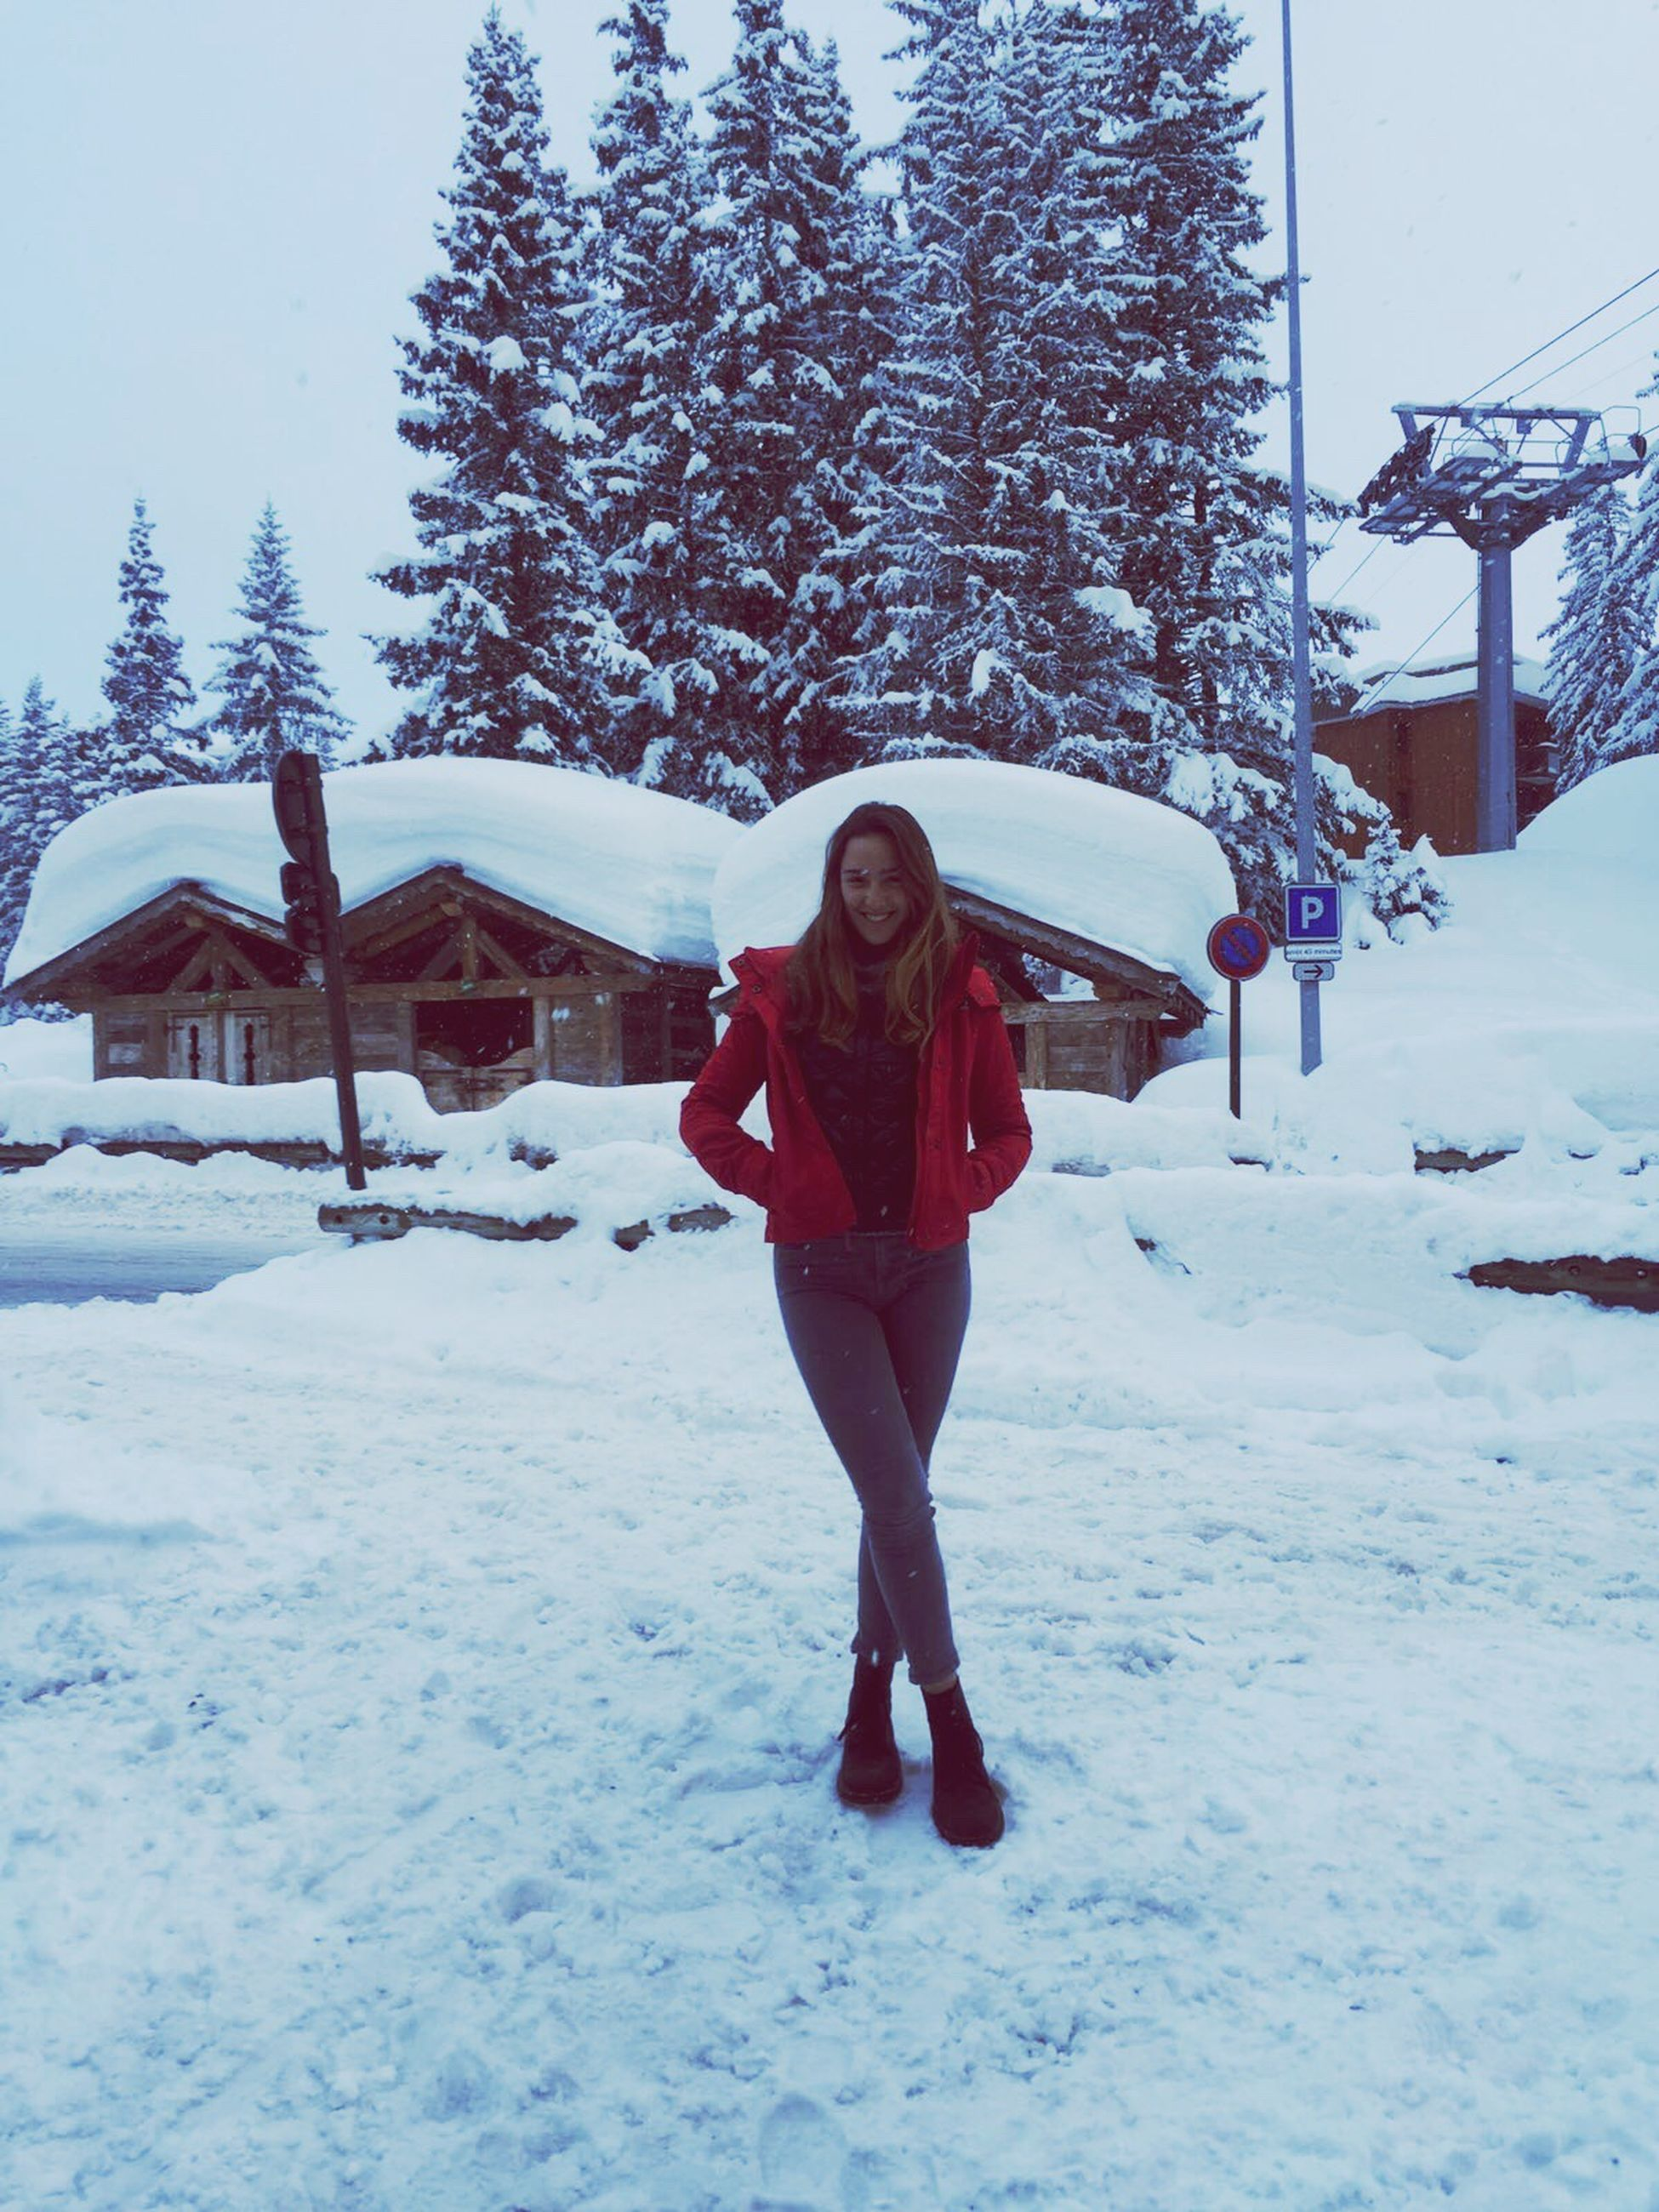 snow, winter, cold temperature, season, weather, warm clothing, lifestyles, full length, covering, leisure activity, frozen, white color, covered, standing, walking, rear view, field, nature